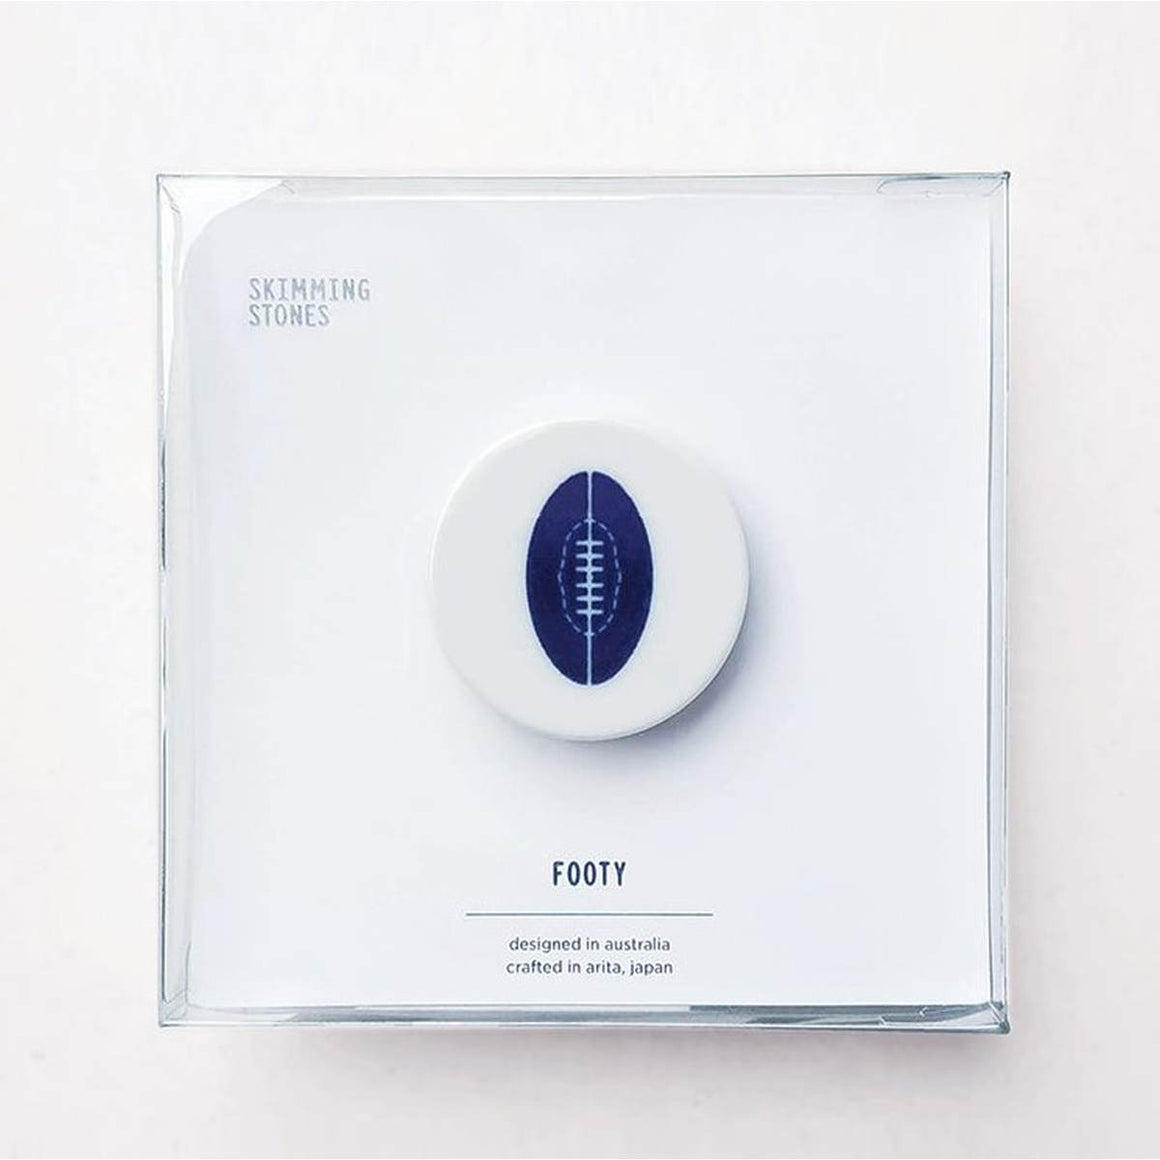 A circular disc shaped porcelain magnet with a blue and white cobalt oxide glaze design on it. The design is a stylised version of an Australian Rules football. The magnet is shown in its stylish square translucent gift box.